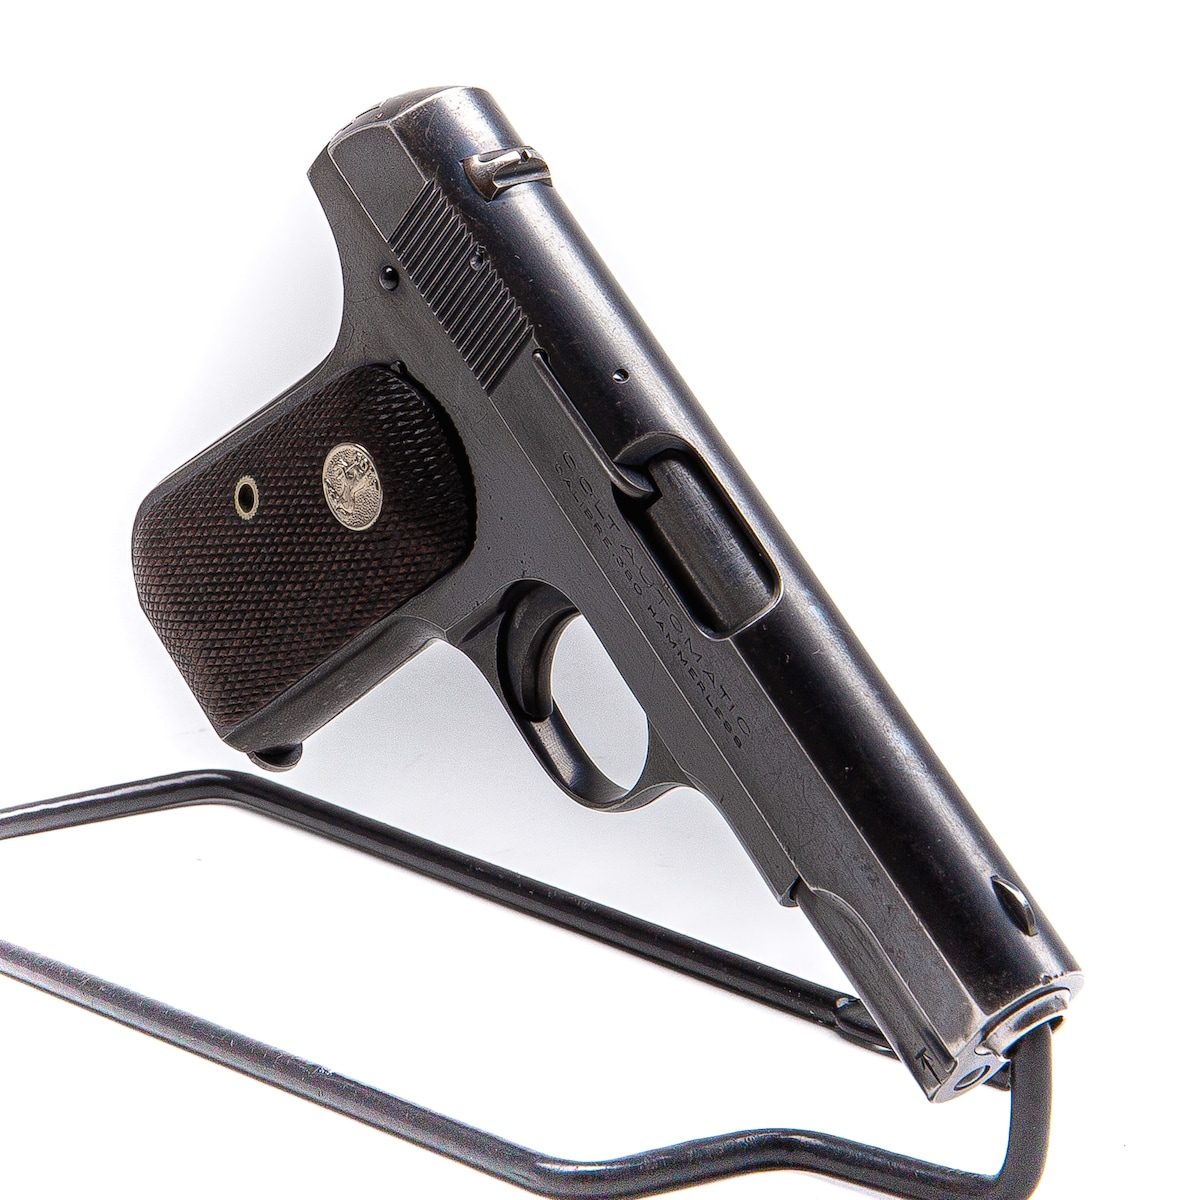 COLT AUTOMATIC 380 HAMMERLESS